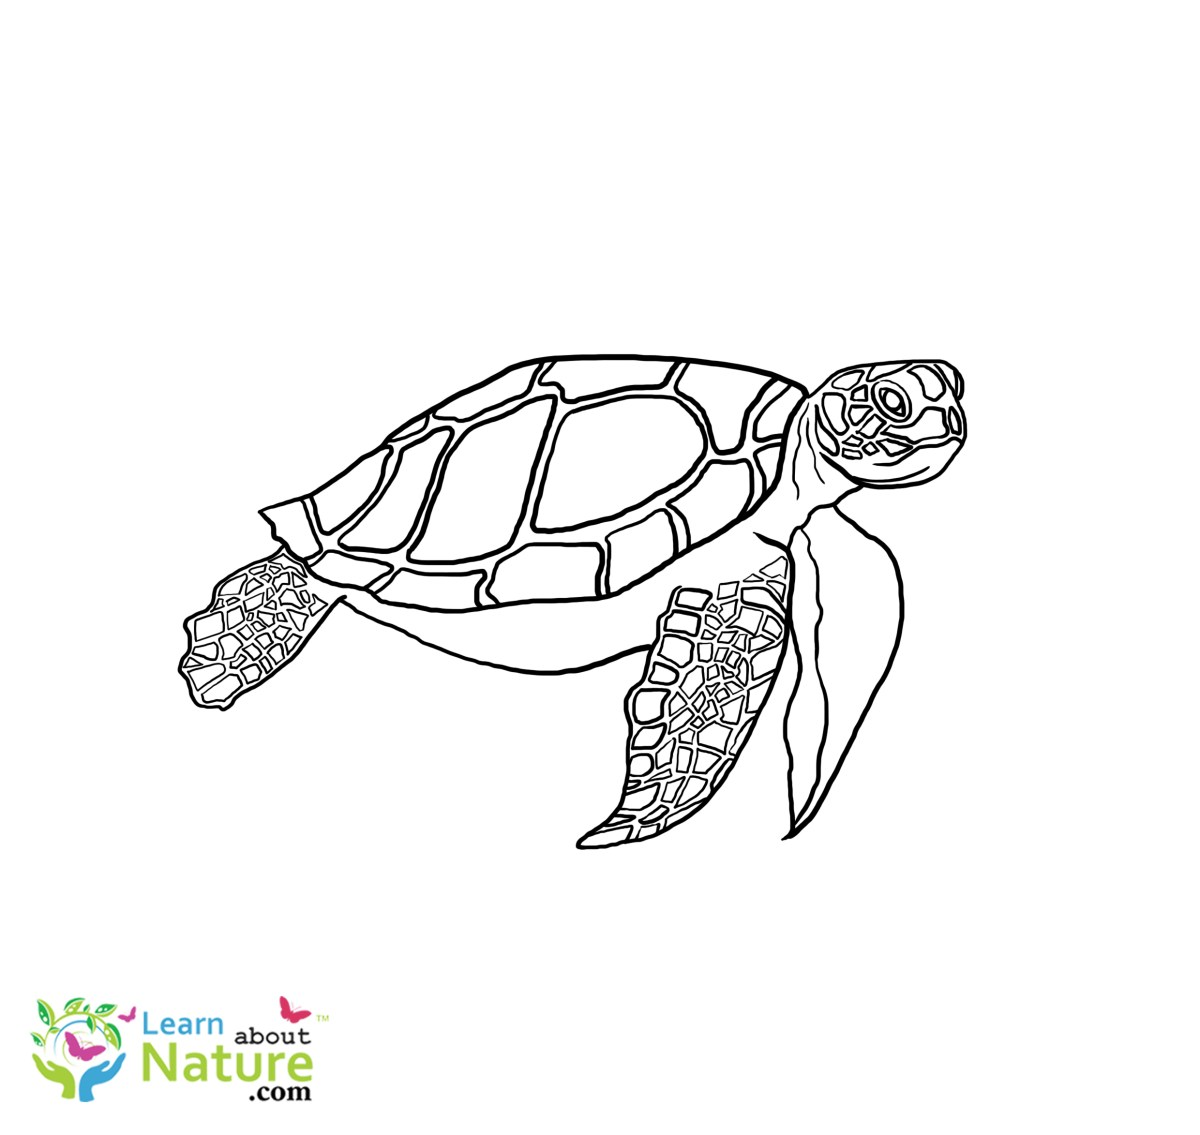 Sea Turtle Coloring Page Sea Turtle Coloring Page 4 Learn About Nature